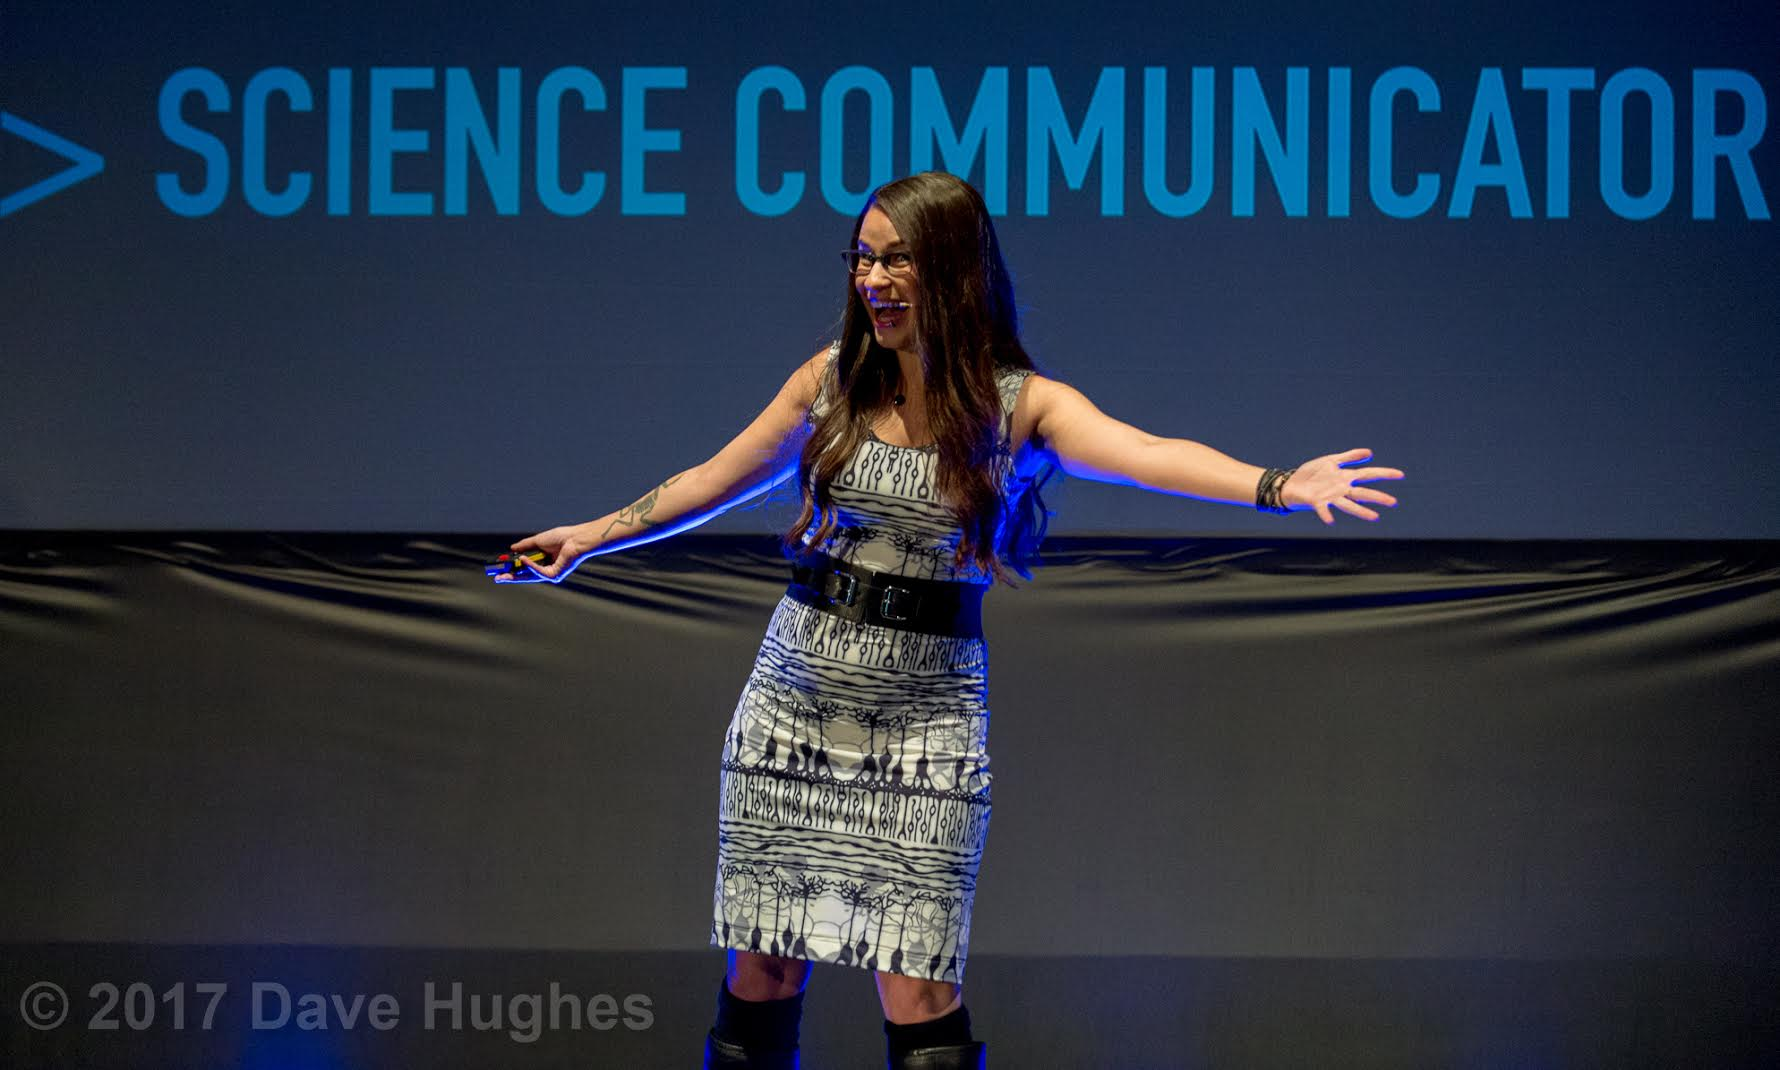 Cara Santa Maria Science Communicator on stage in Neuroscience Shenova Dress